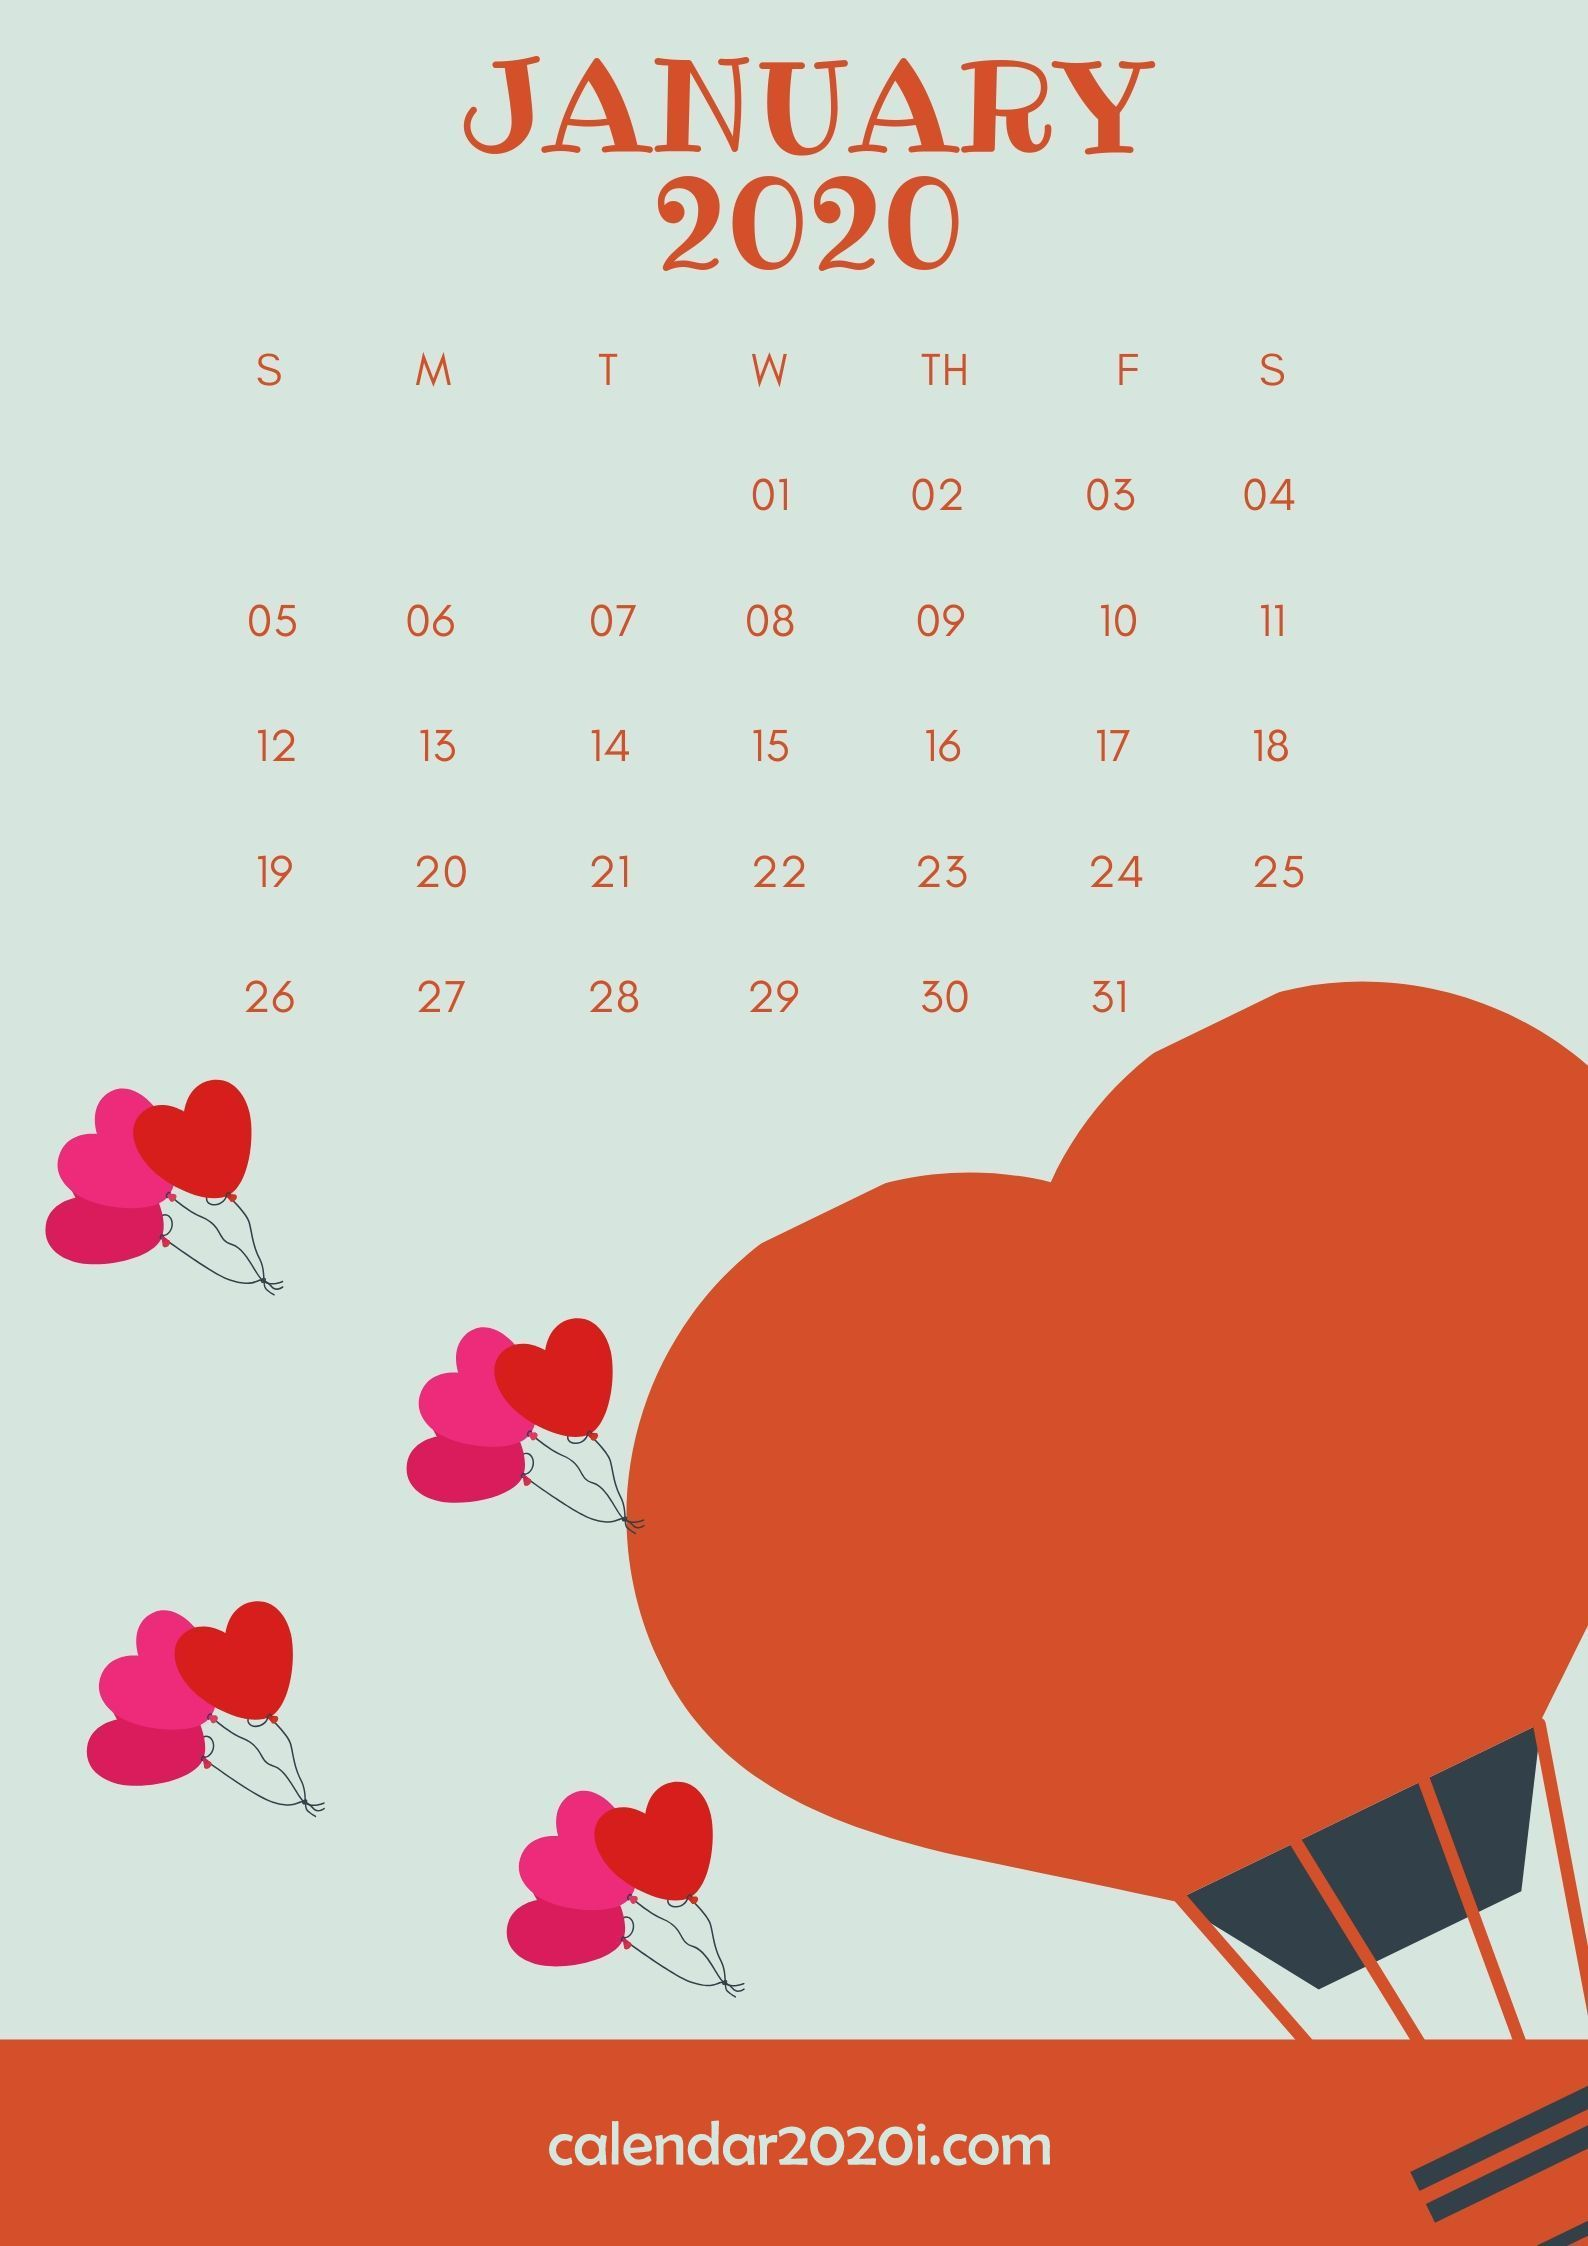 January 2020 Wall Calendar Printable Calendar wallpaper Monthly 1588x2246